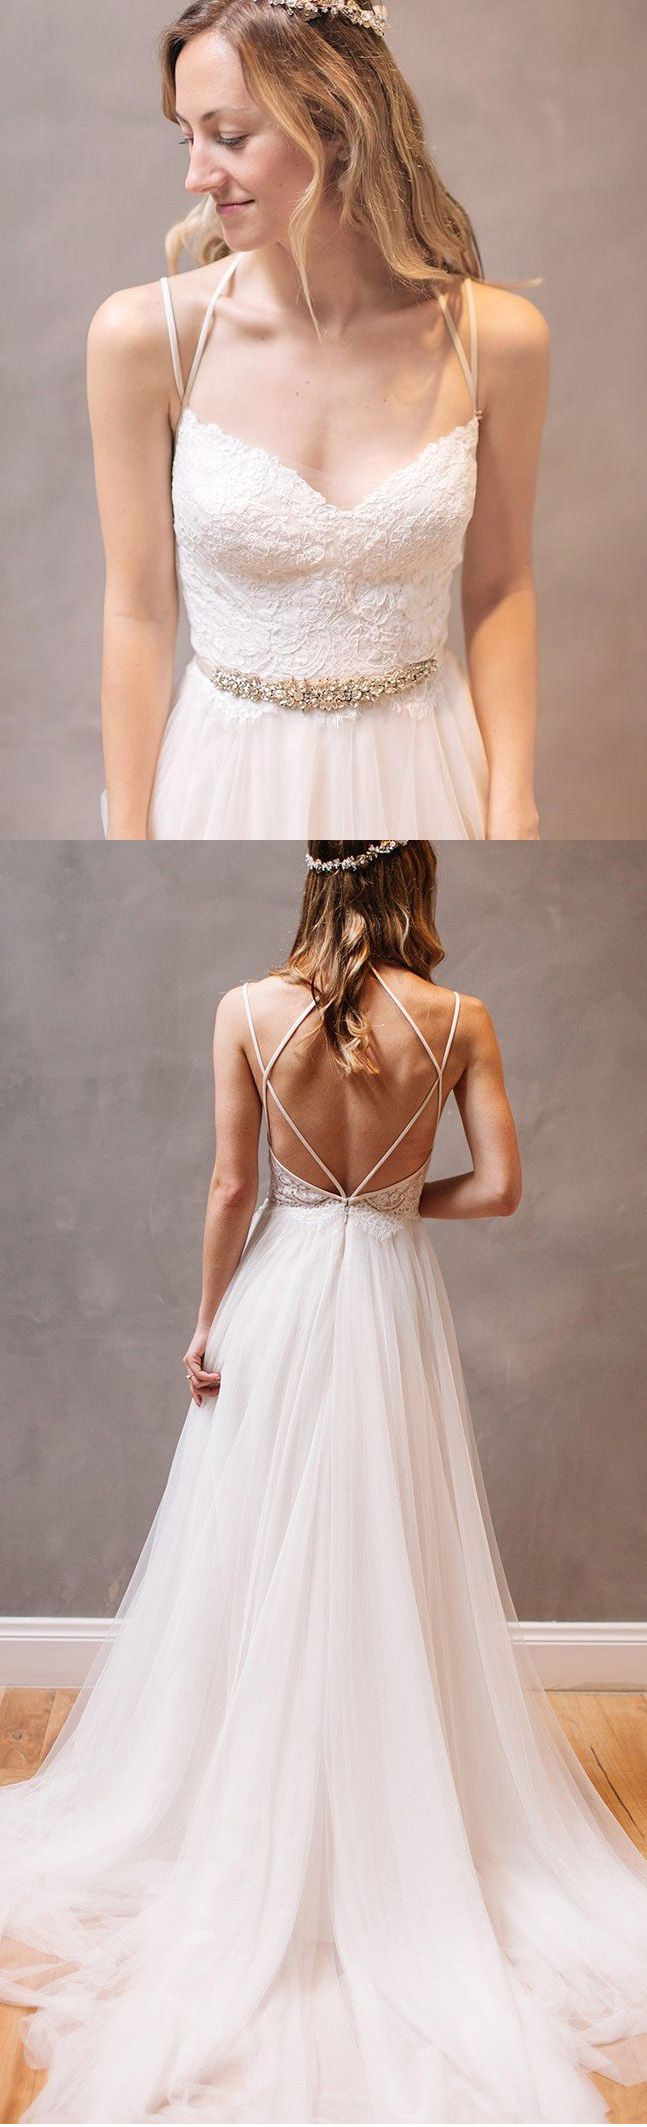 best wedding dresses images on pinterest